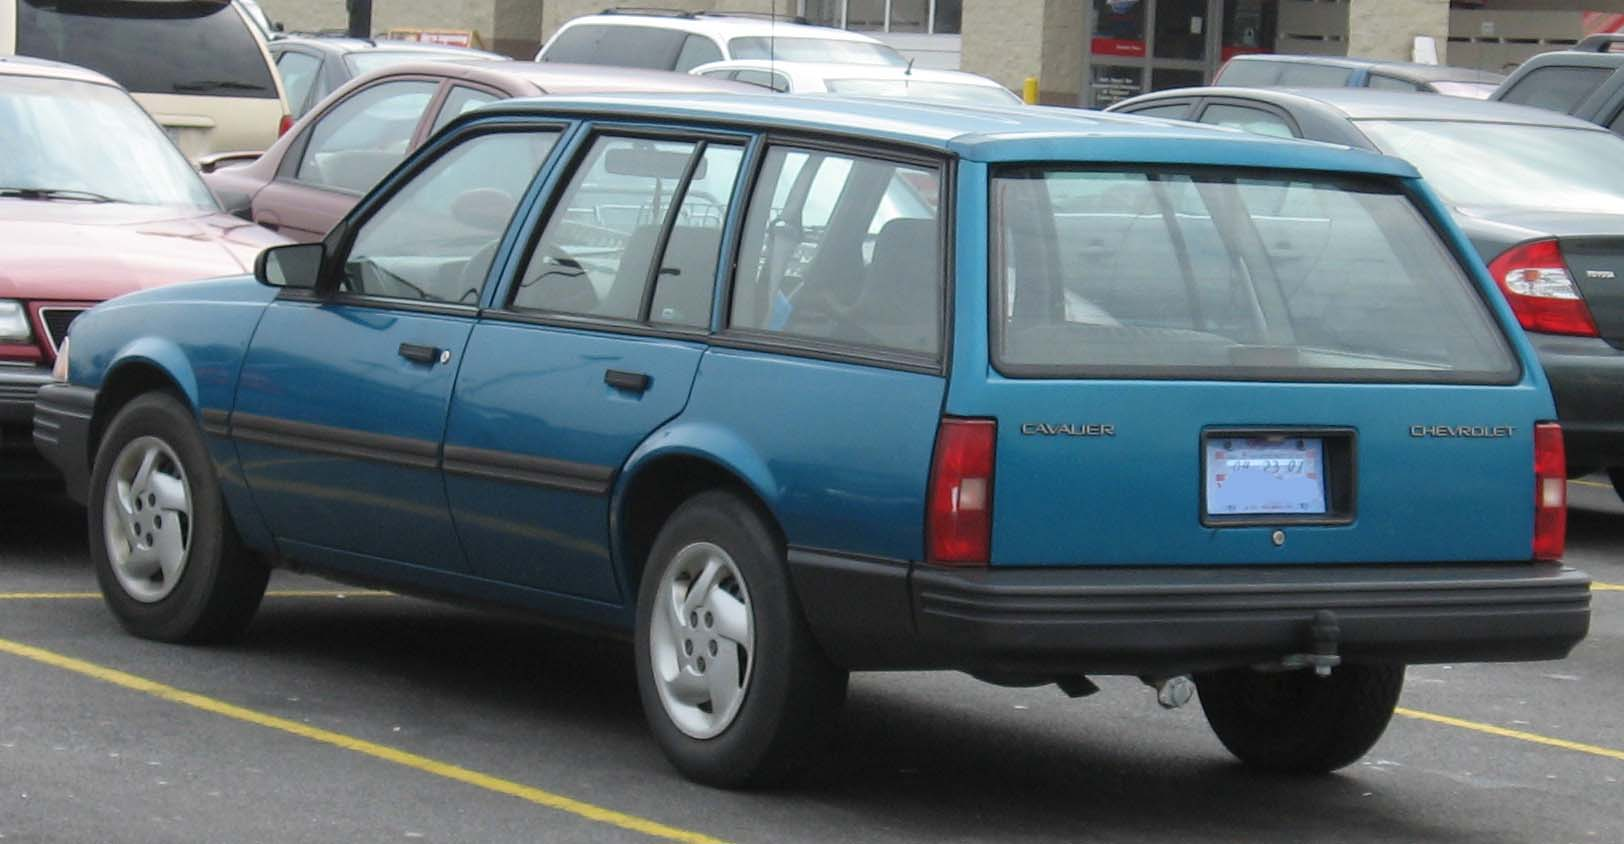 File 91 94 Chevrolet Cavalier Wagon Jpg Wikimedia Commons